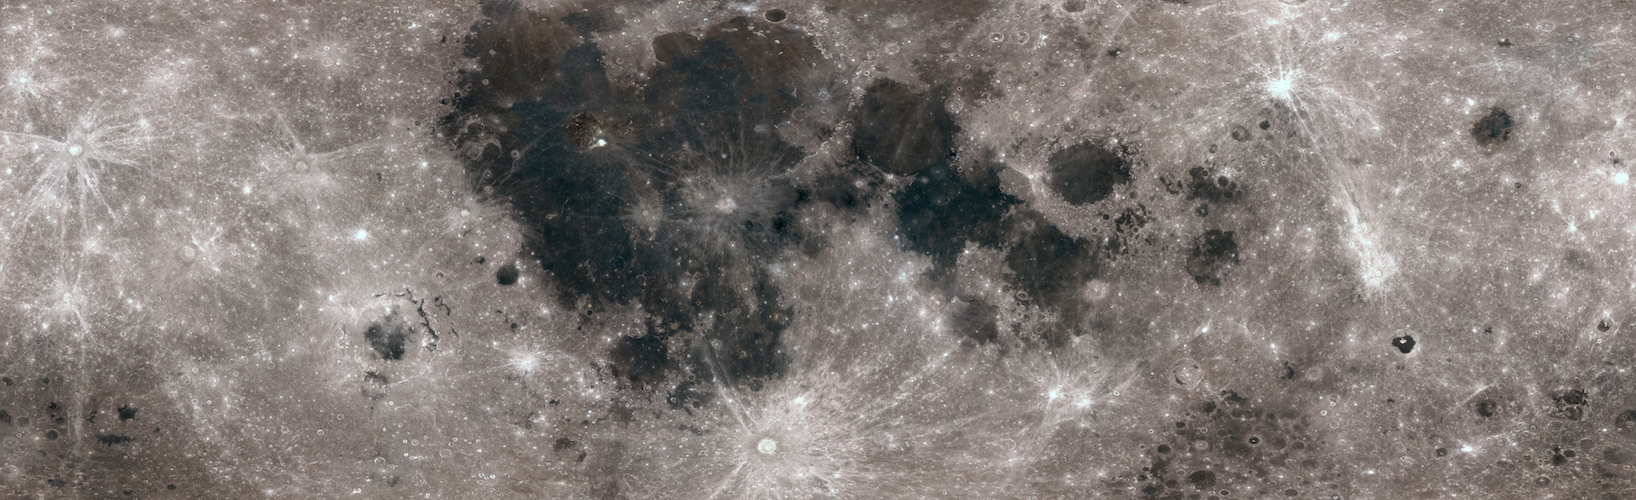 flat projection map of full lunar surface